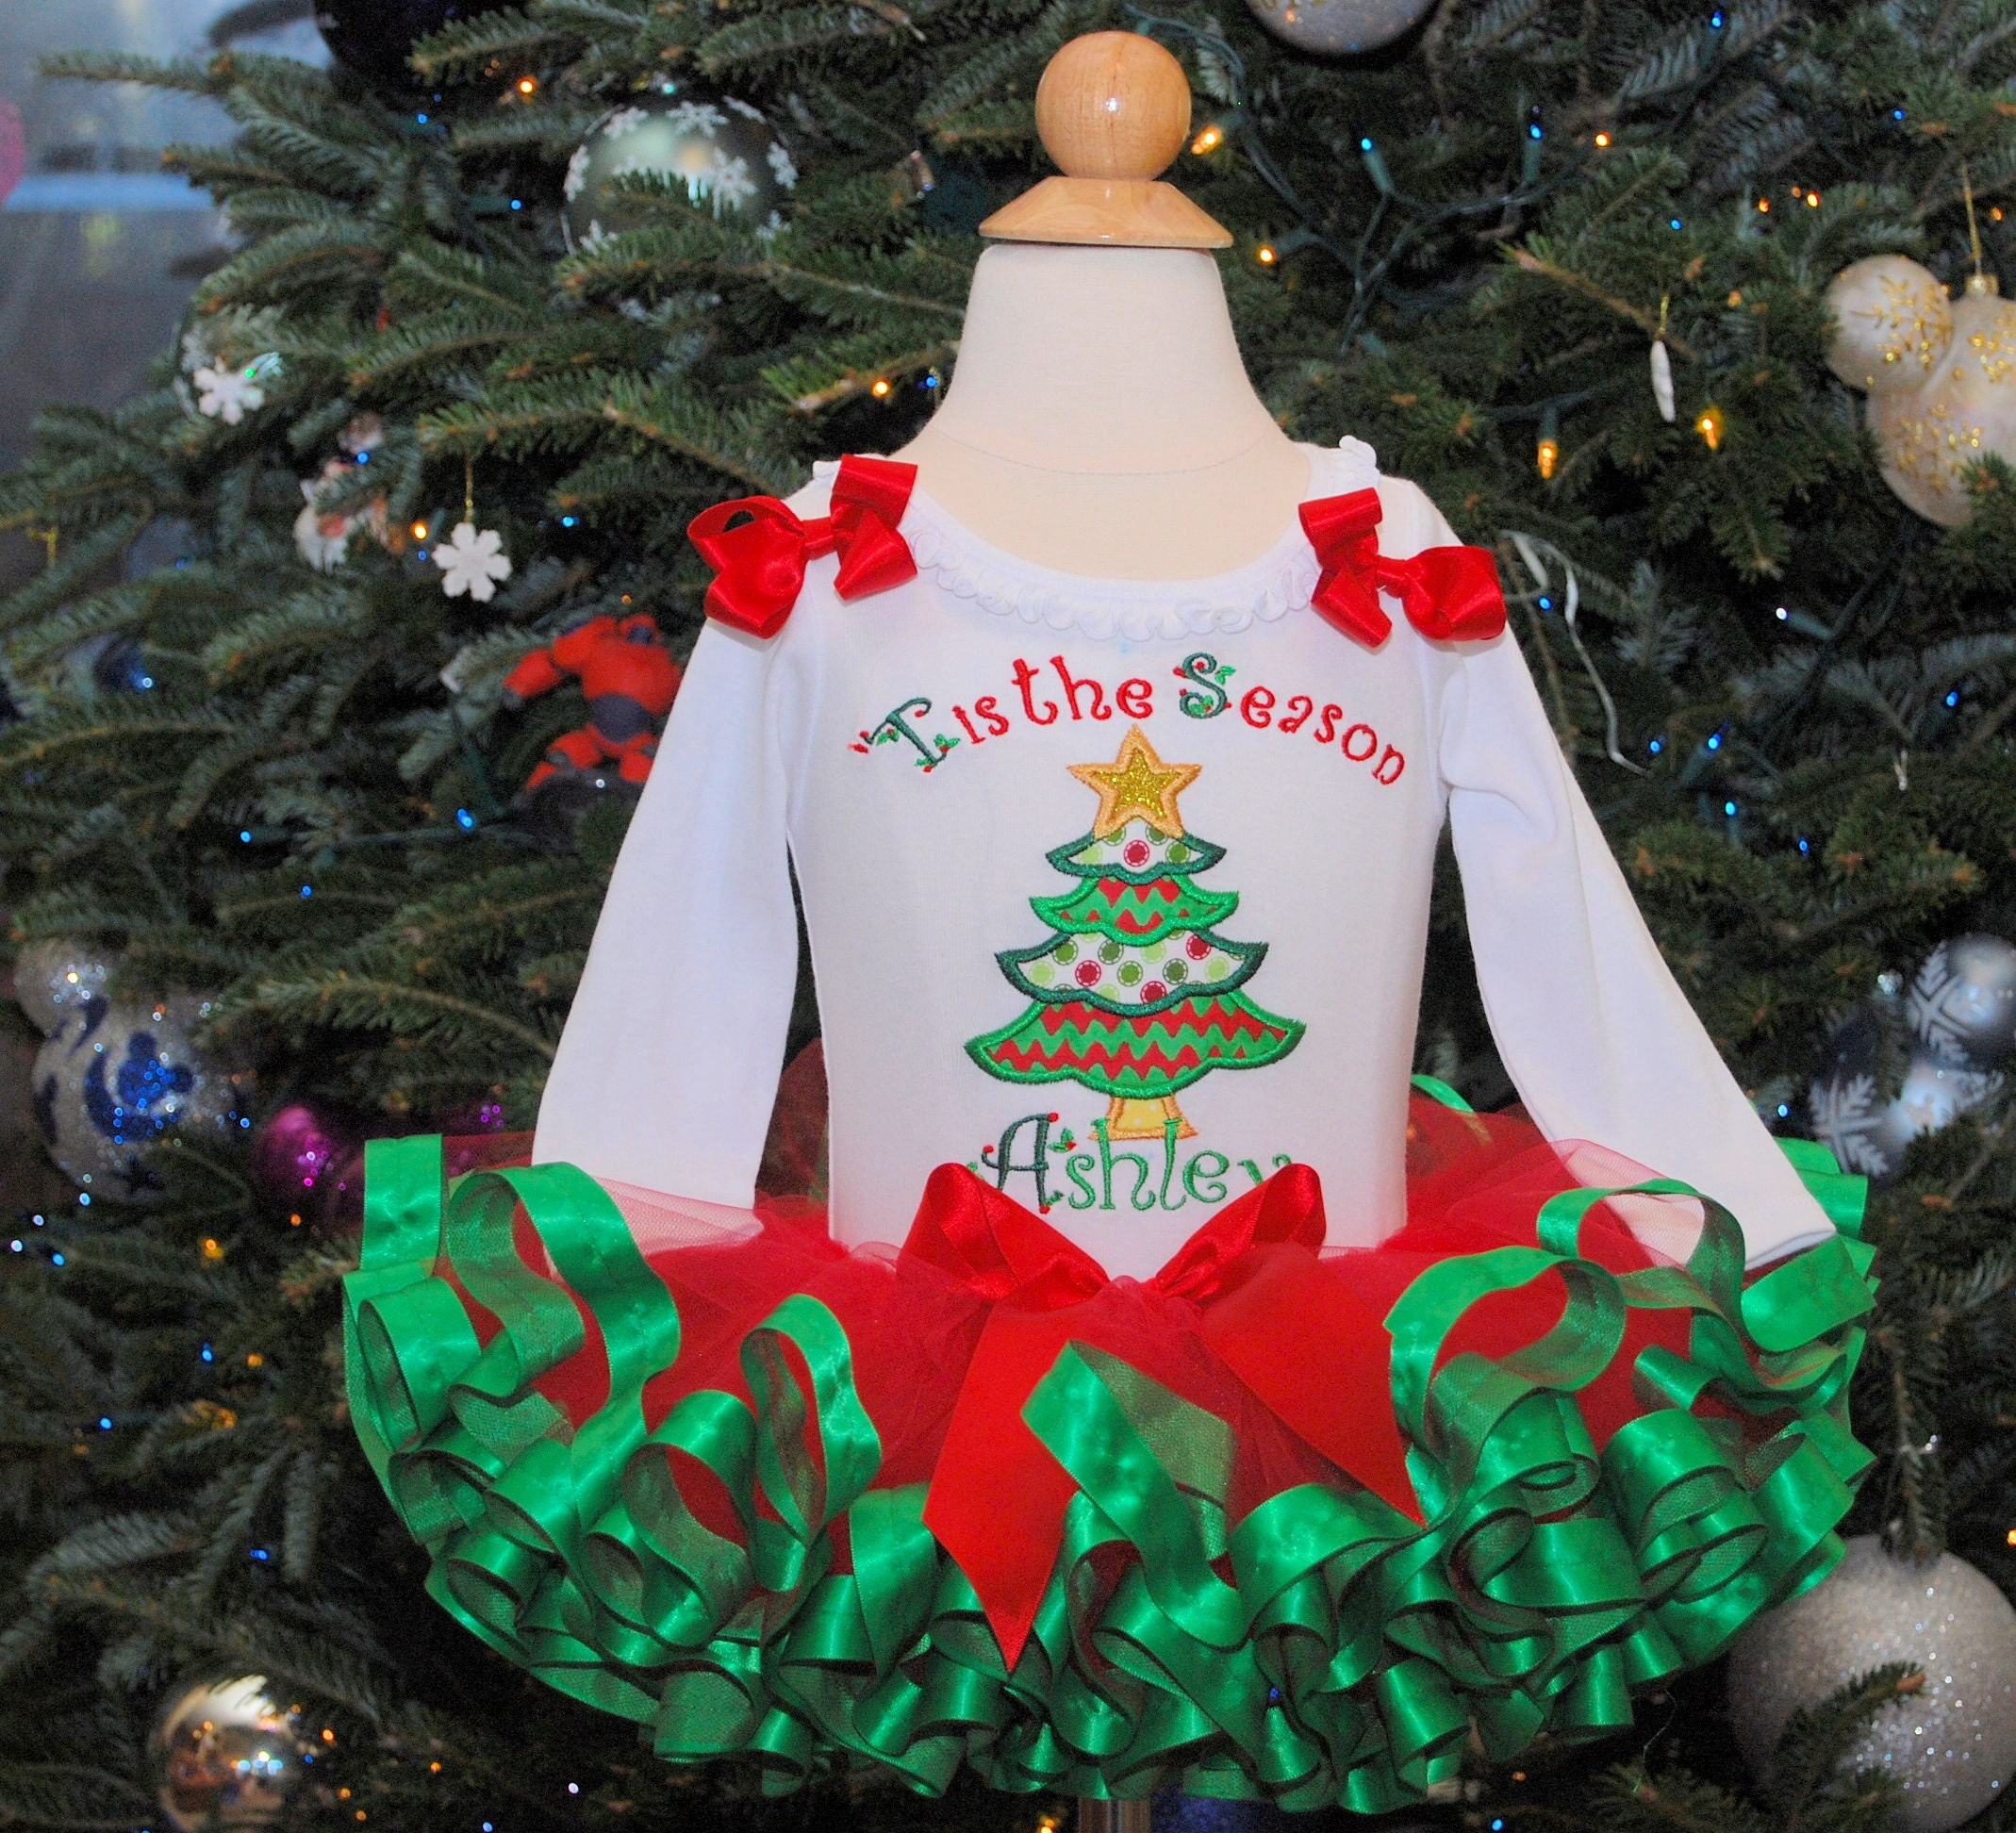 Christmas Tutu Outfits.Christmas Tutu Outfit Holiday Tutu Set Christmas Tree Tutu Christmas Holiday Dress Tis The Season Christmas Outfit Ribbon Trimmed Tutu